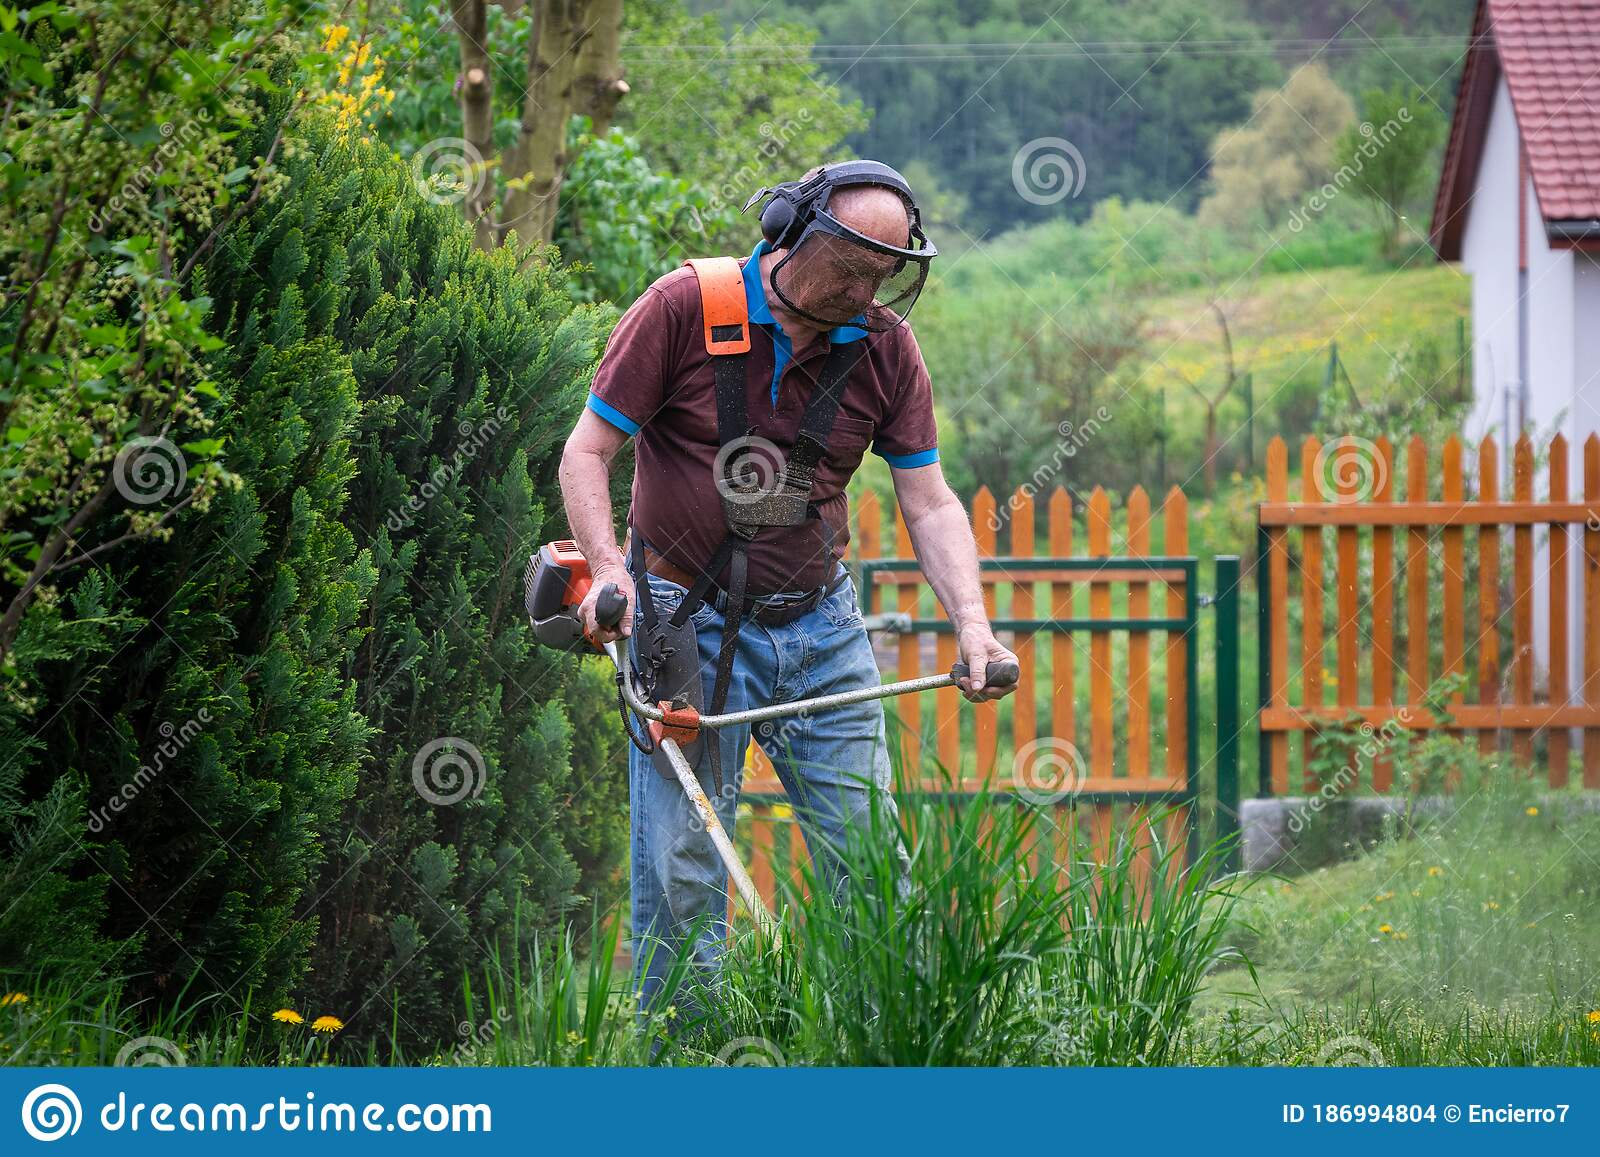 Man mowing lawn stock image. Image of countryside, green